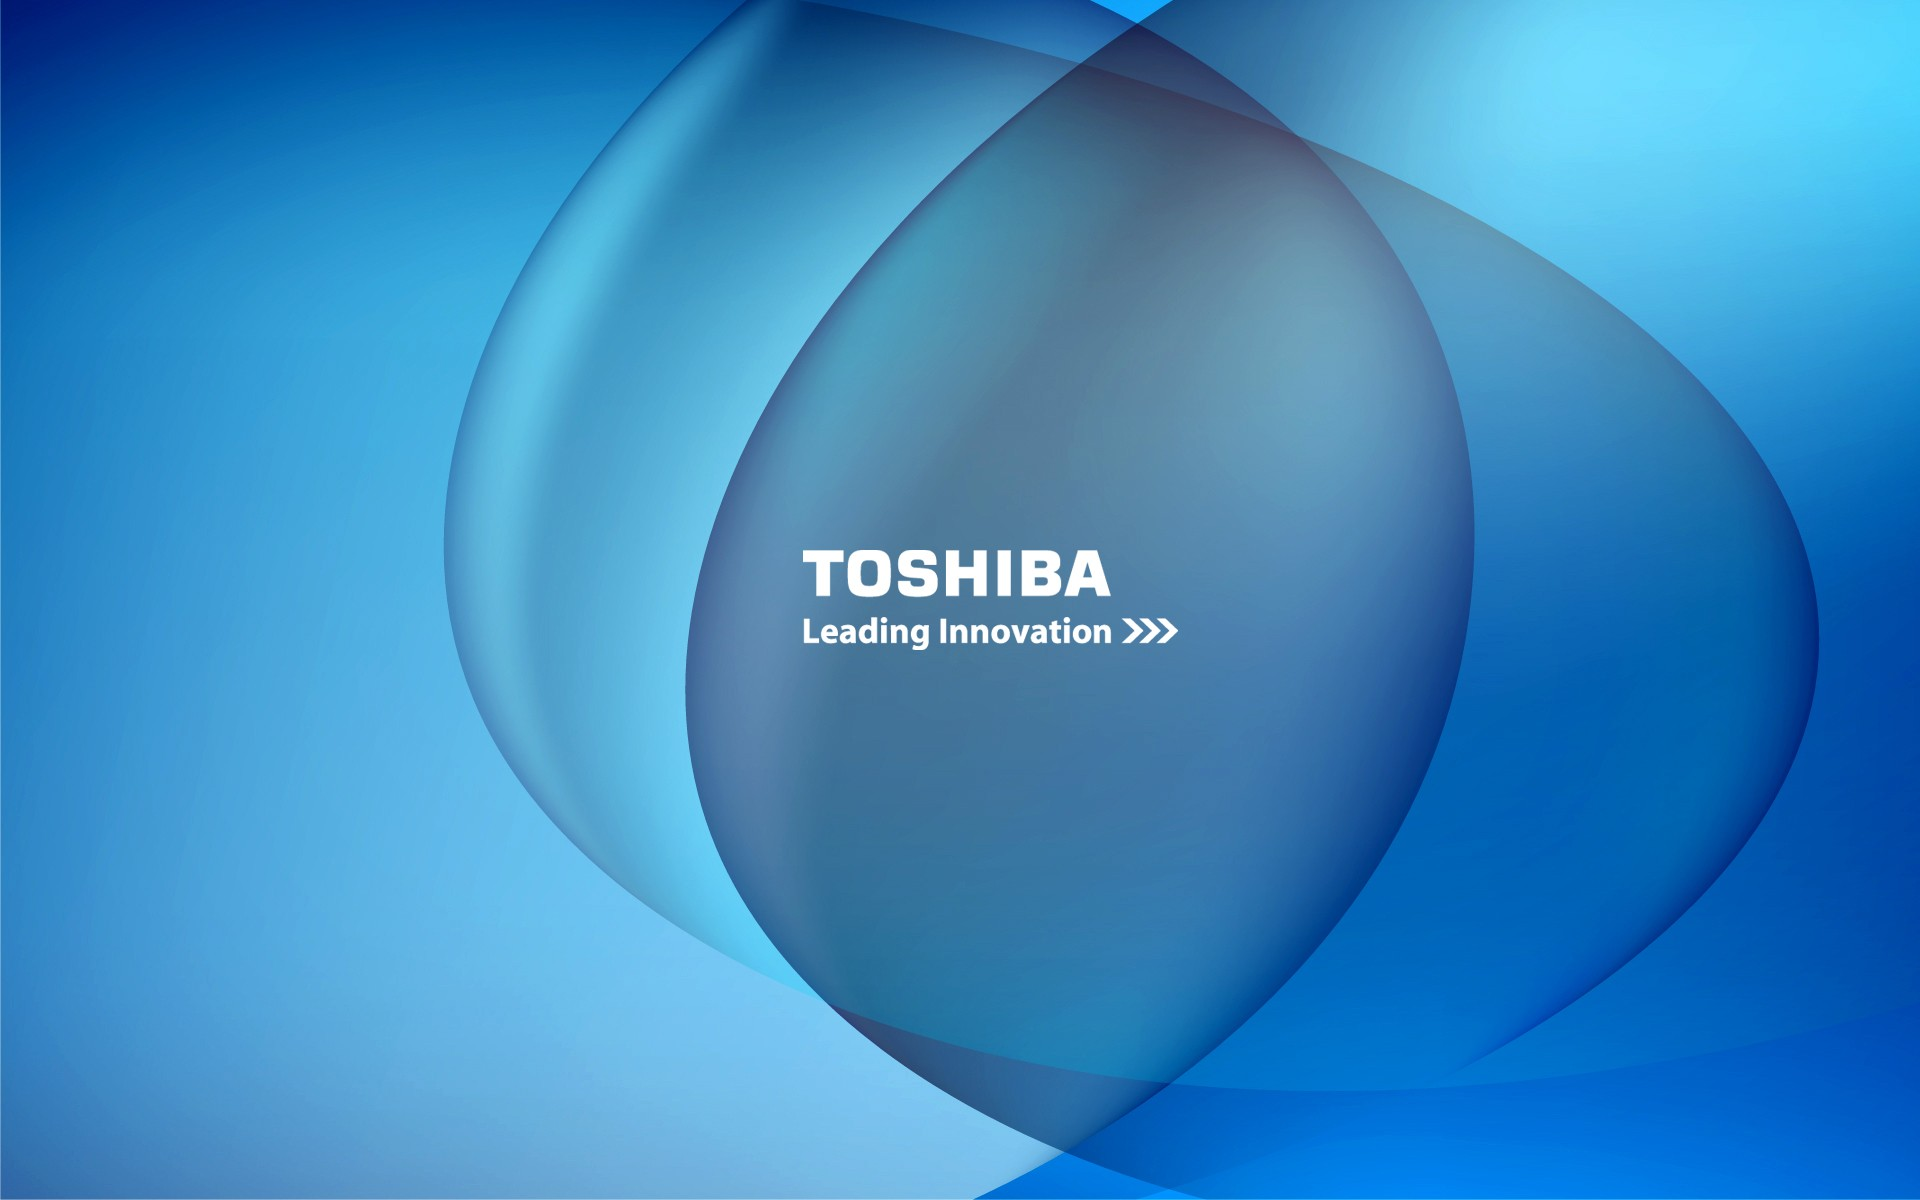 1920x1200 wallpaper toshiba by ruifernandes on deviantart toshiba backgrounds wallpapers wallpapers